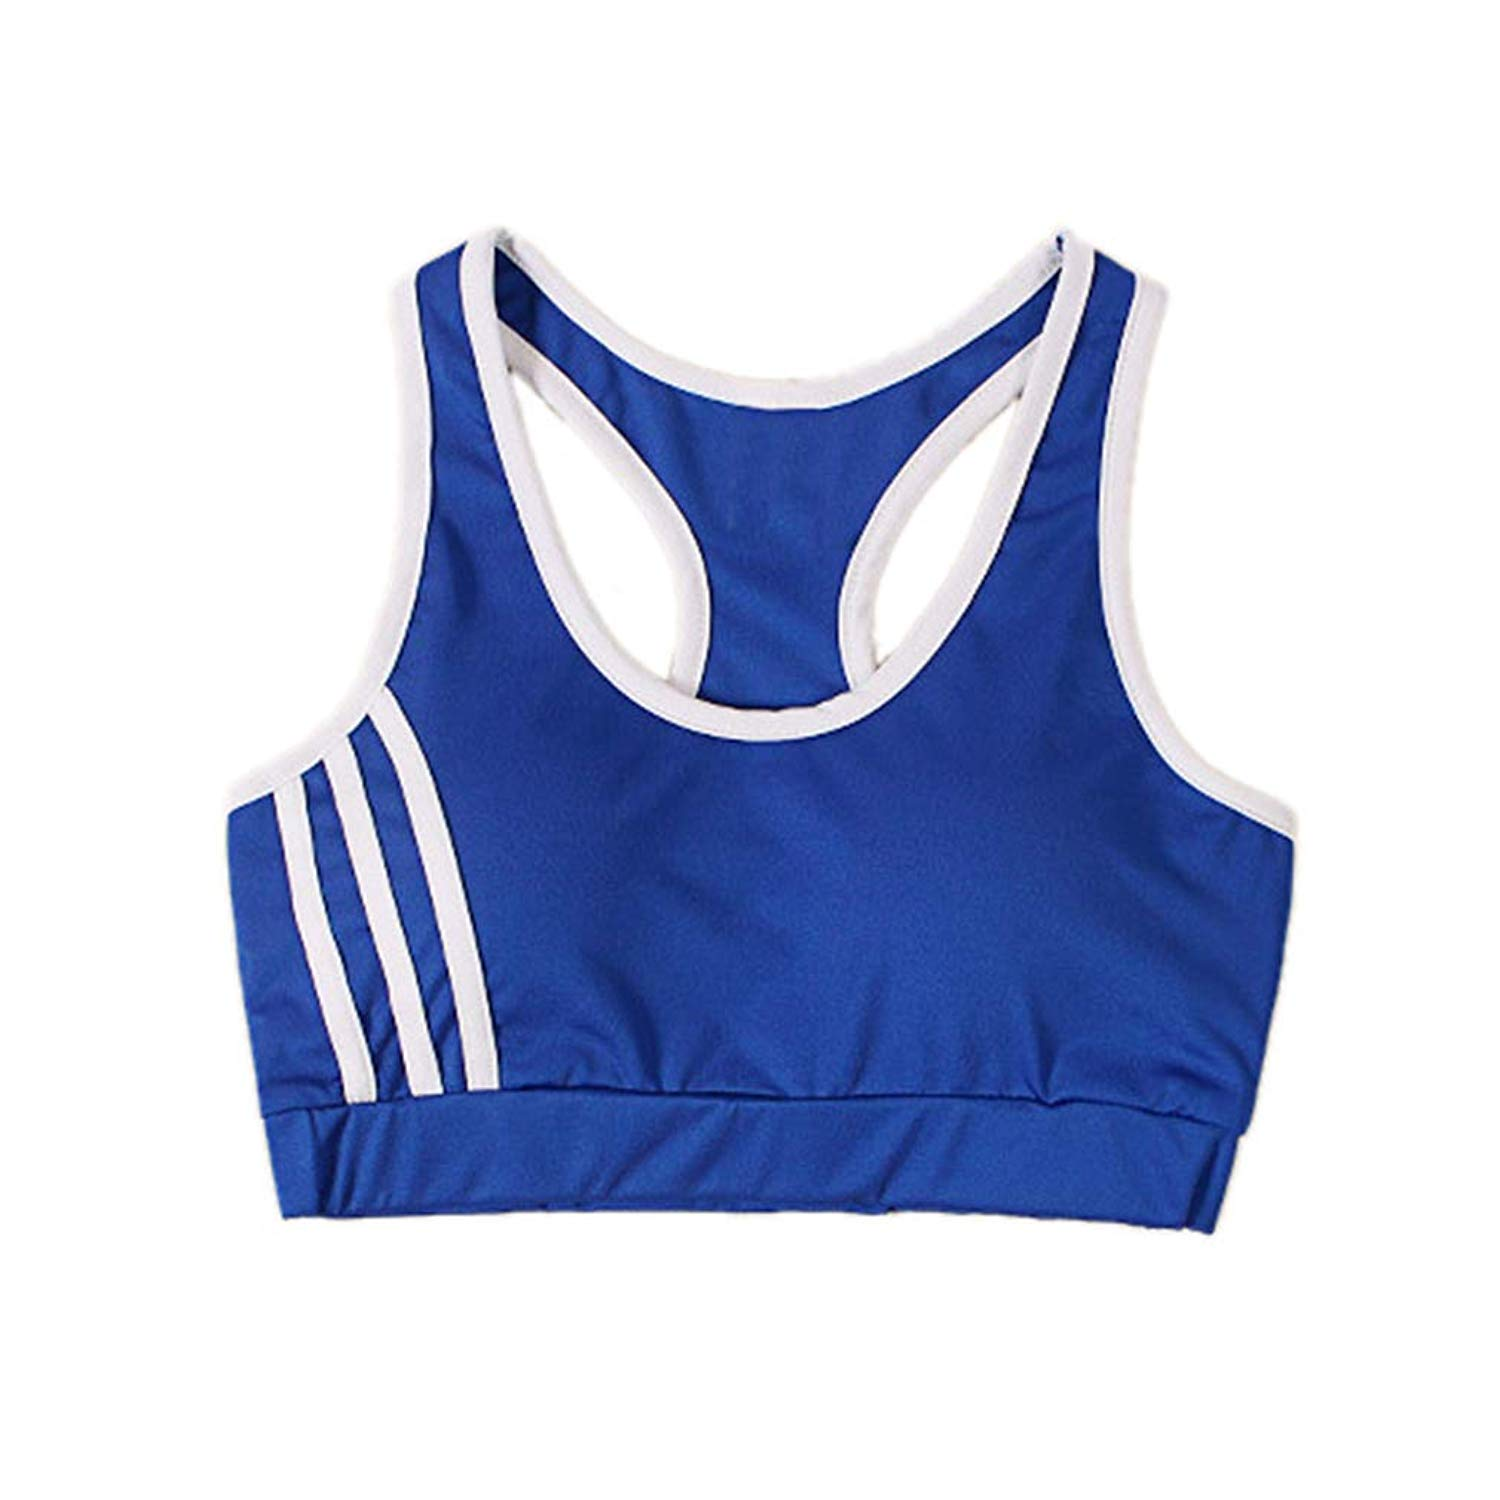 60df84ca9a Get Quotations · Women Yoga Sports Bras Padded Breathable Fitness Gym  Running Athletic Tops